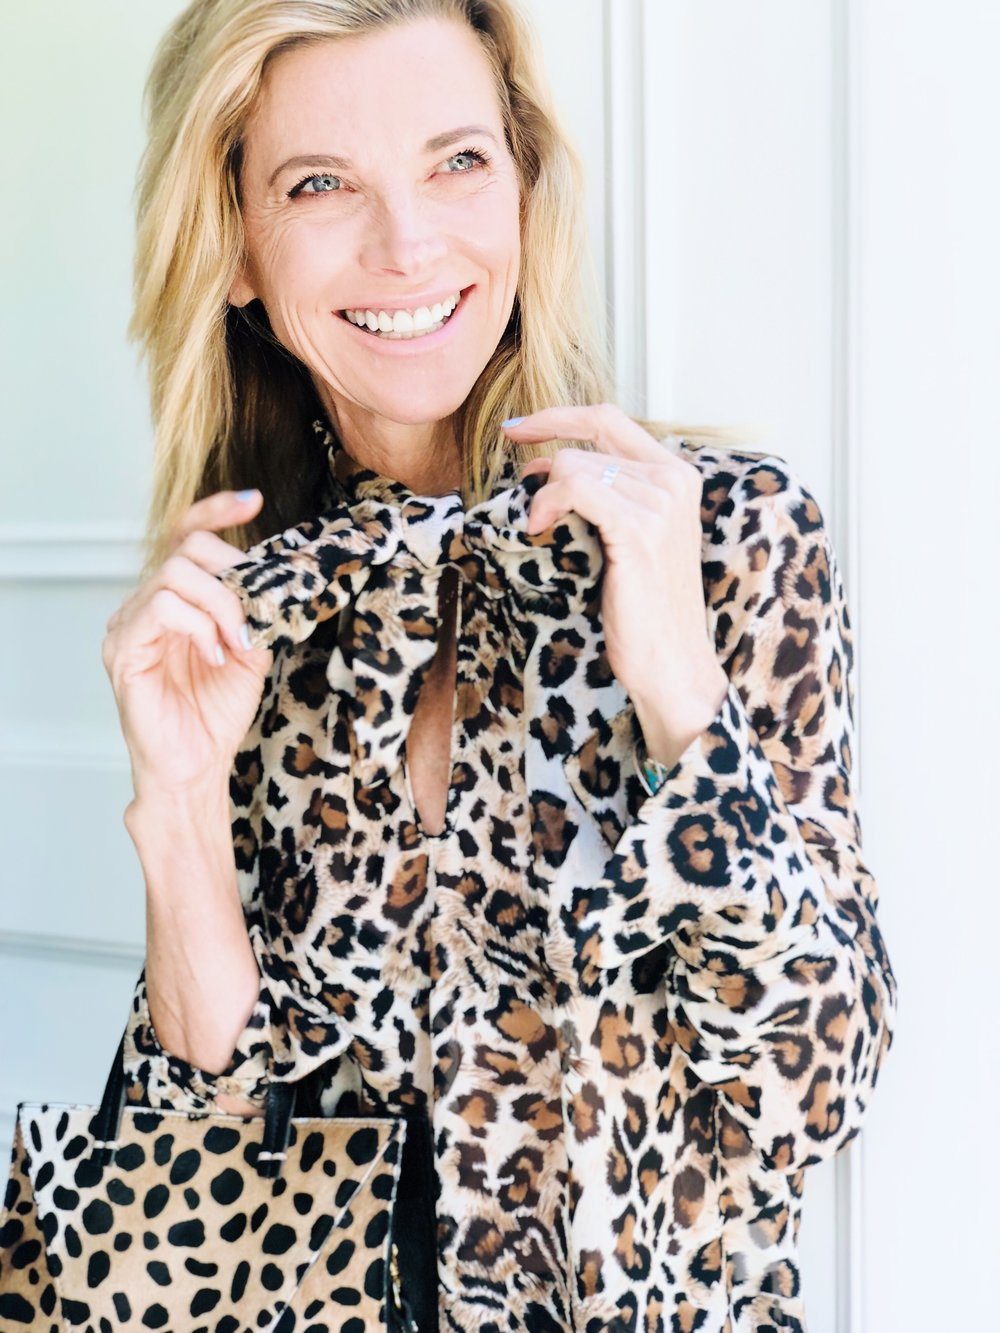 Janet Tie-Top in Leopard   from The Grateful Gardenia X Franne Golde Petite Capsule Collection. Use  GG15  for 15% off your entire order!